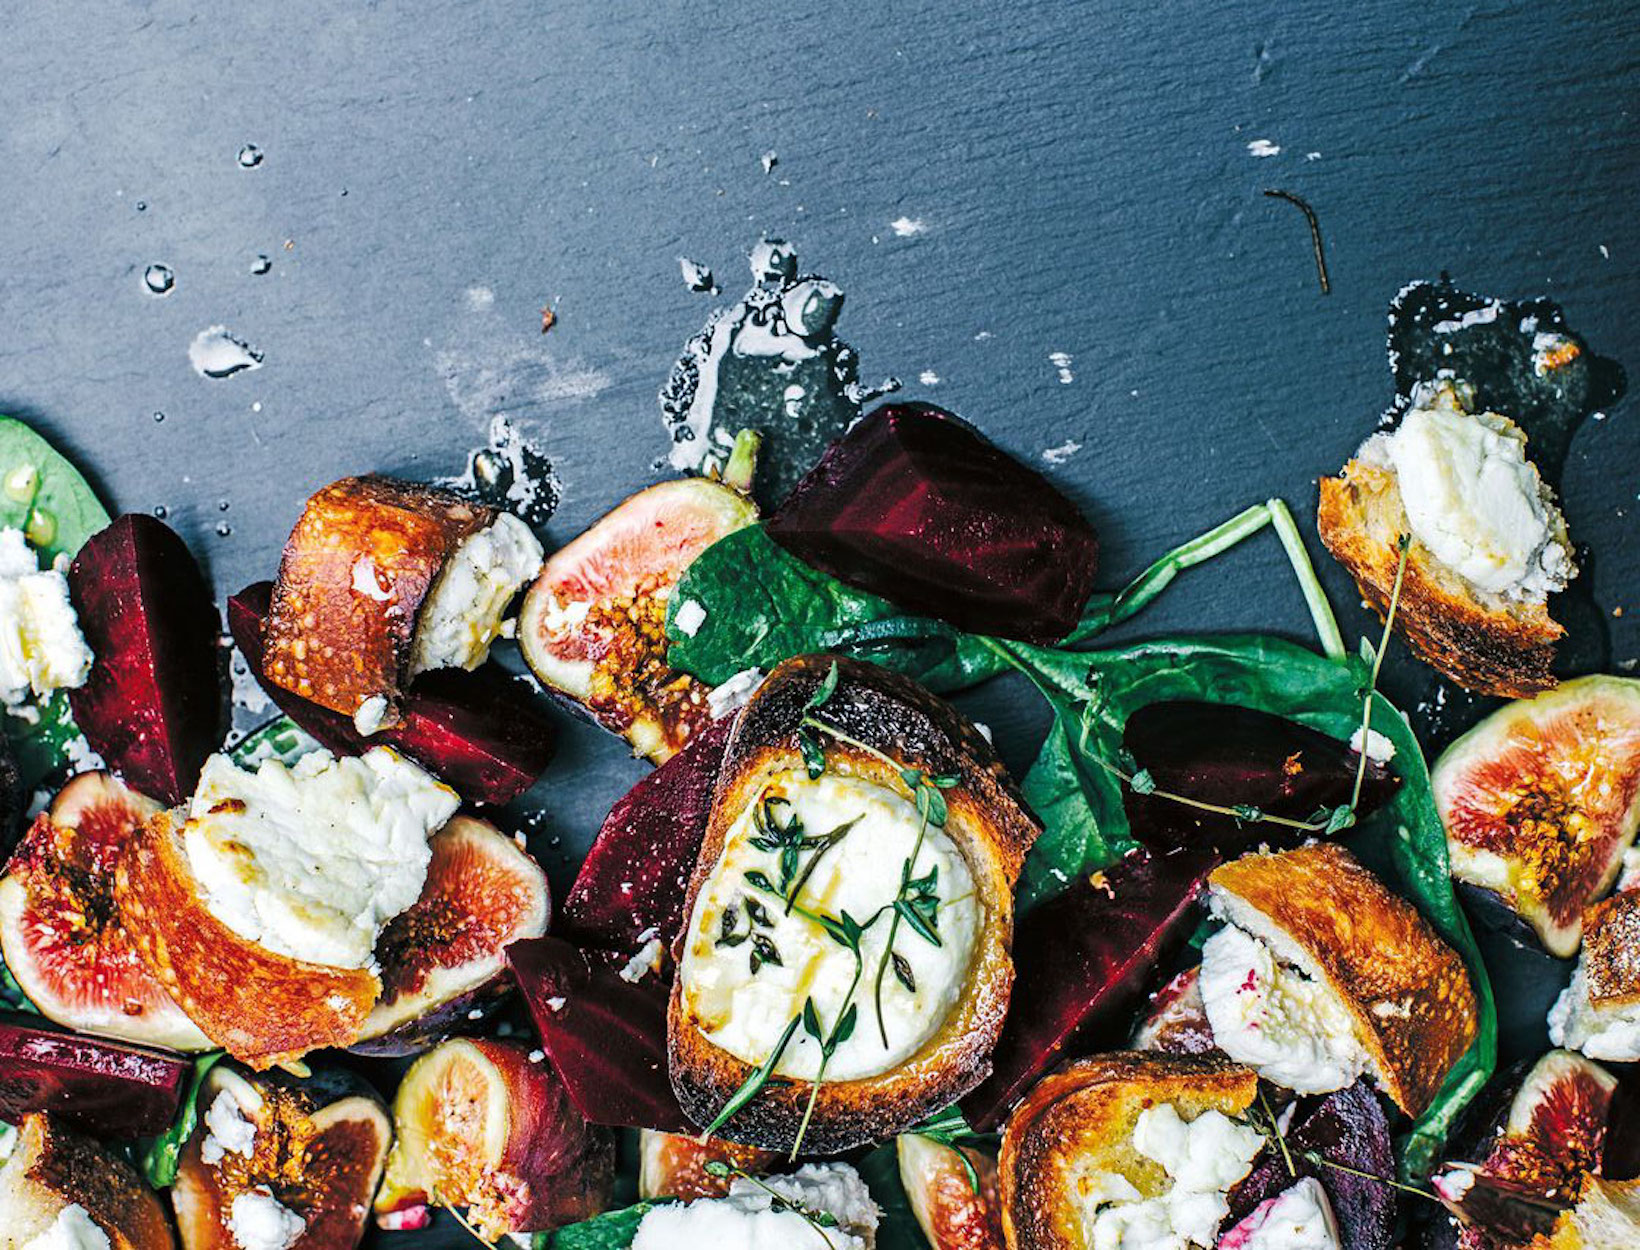 Warm  Goat's Cheese Croutons with Roasted Beets, Figs, and Apple-Mustard Dressing